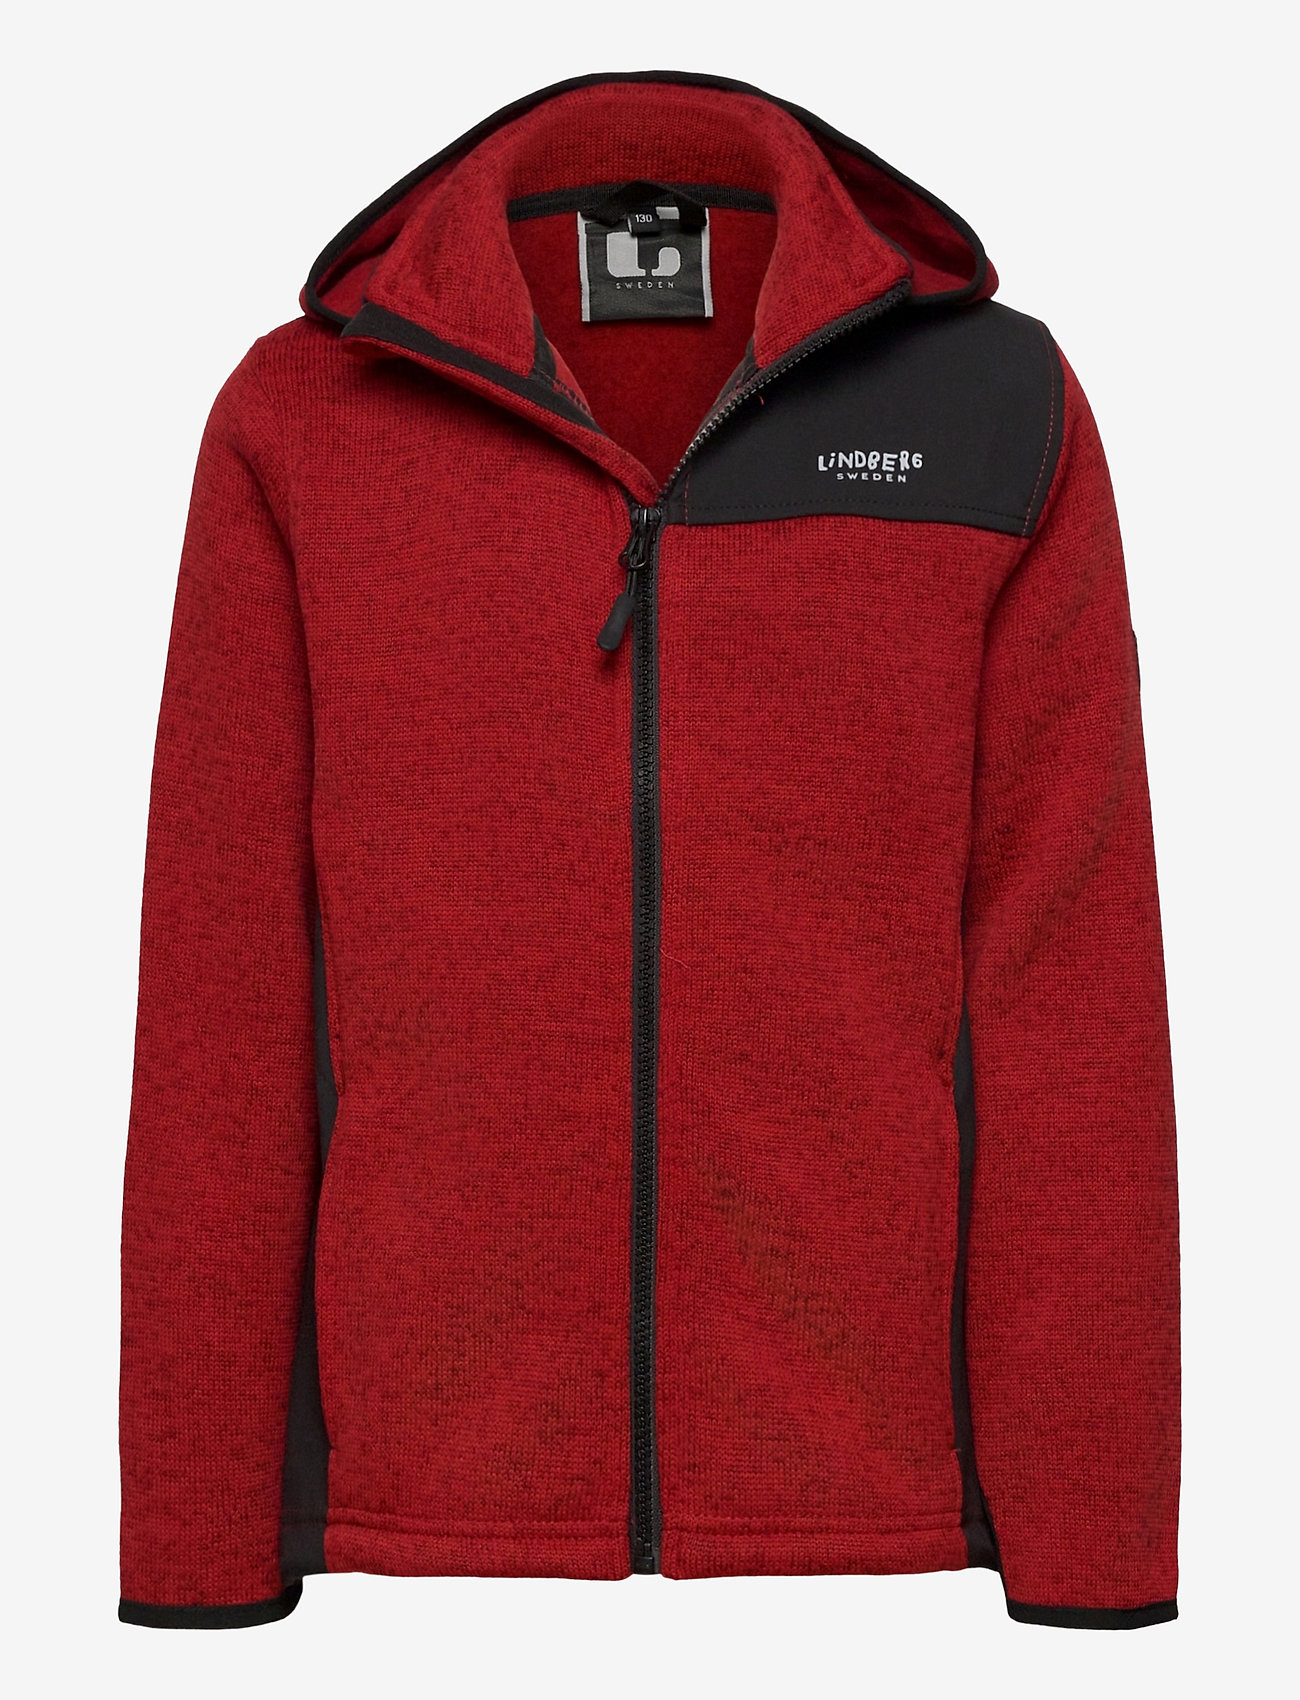 Lindberg Sweden - BORMIO JACKET - fleecetøj - red - 0